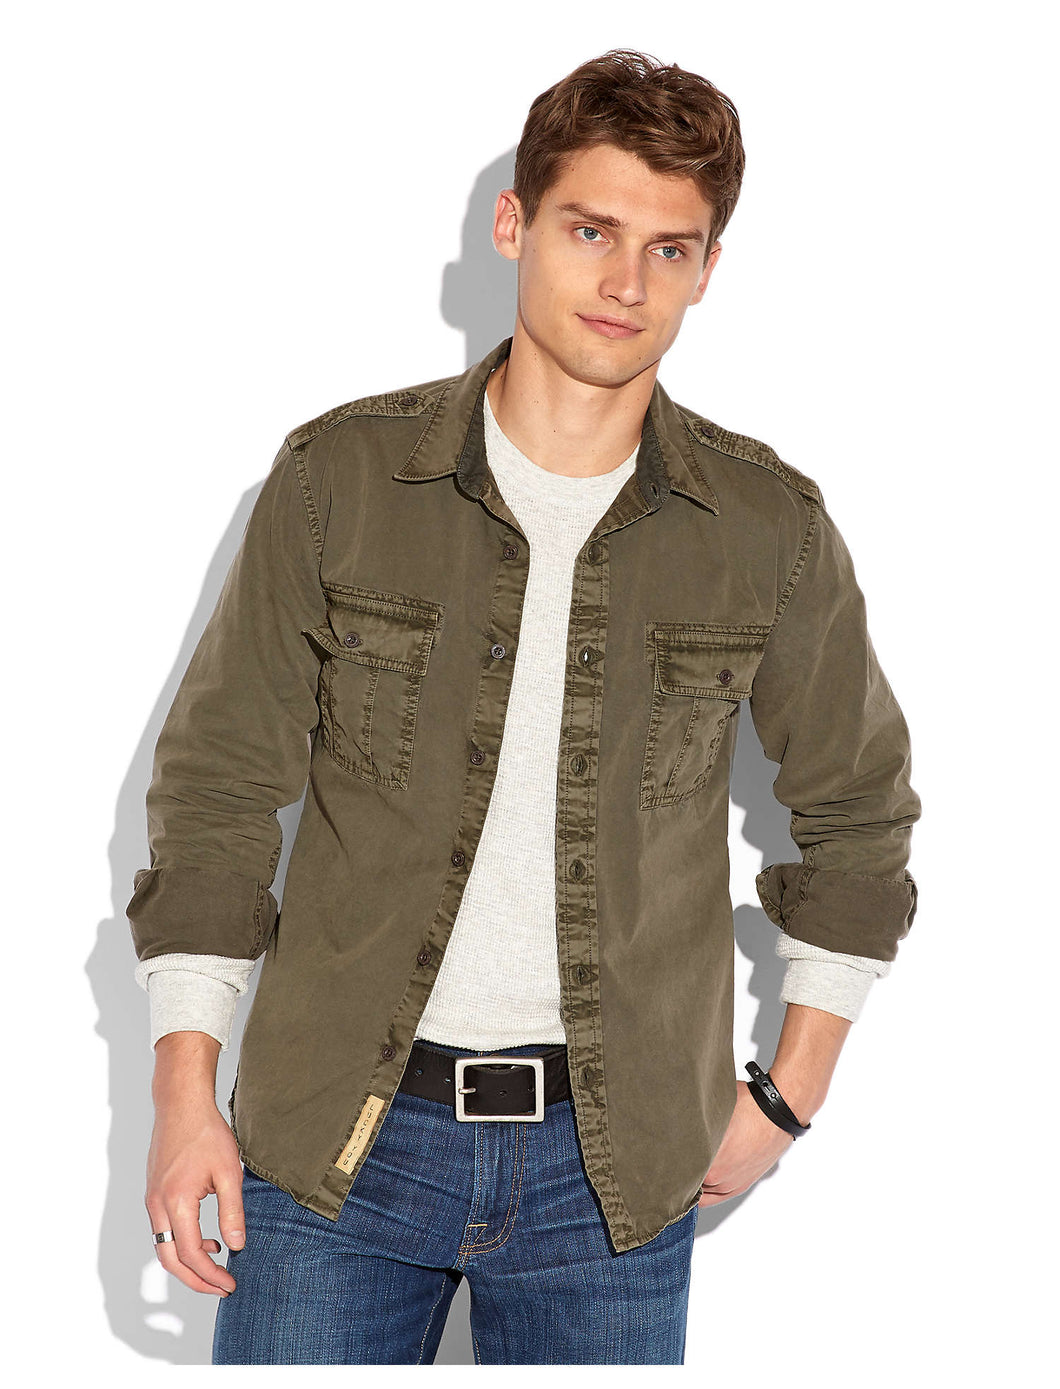 Lucky Men's Iron Workwear 2 Pocket Jacket